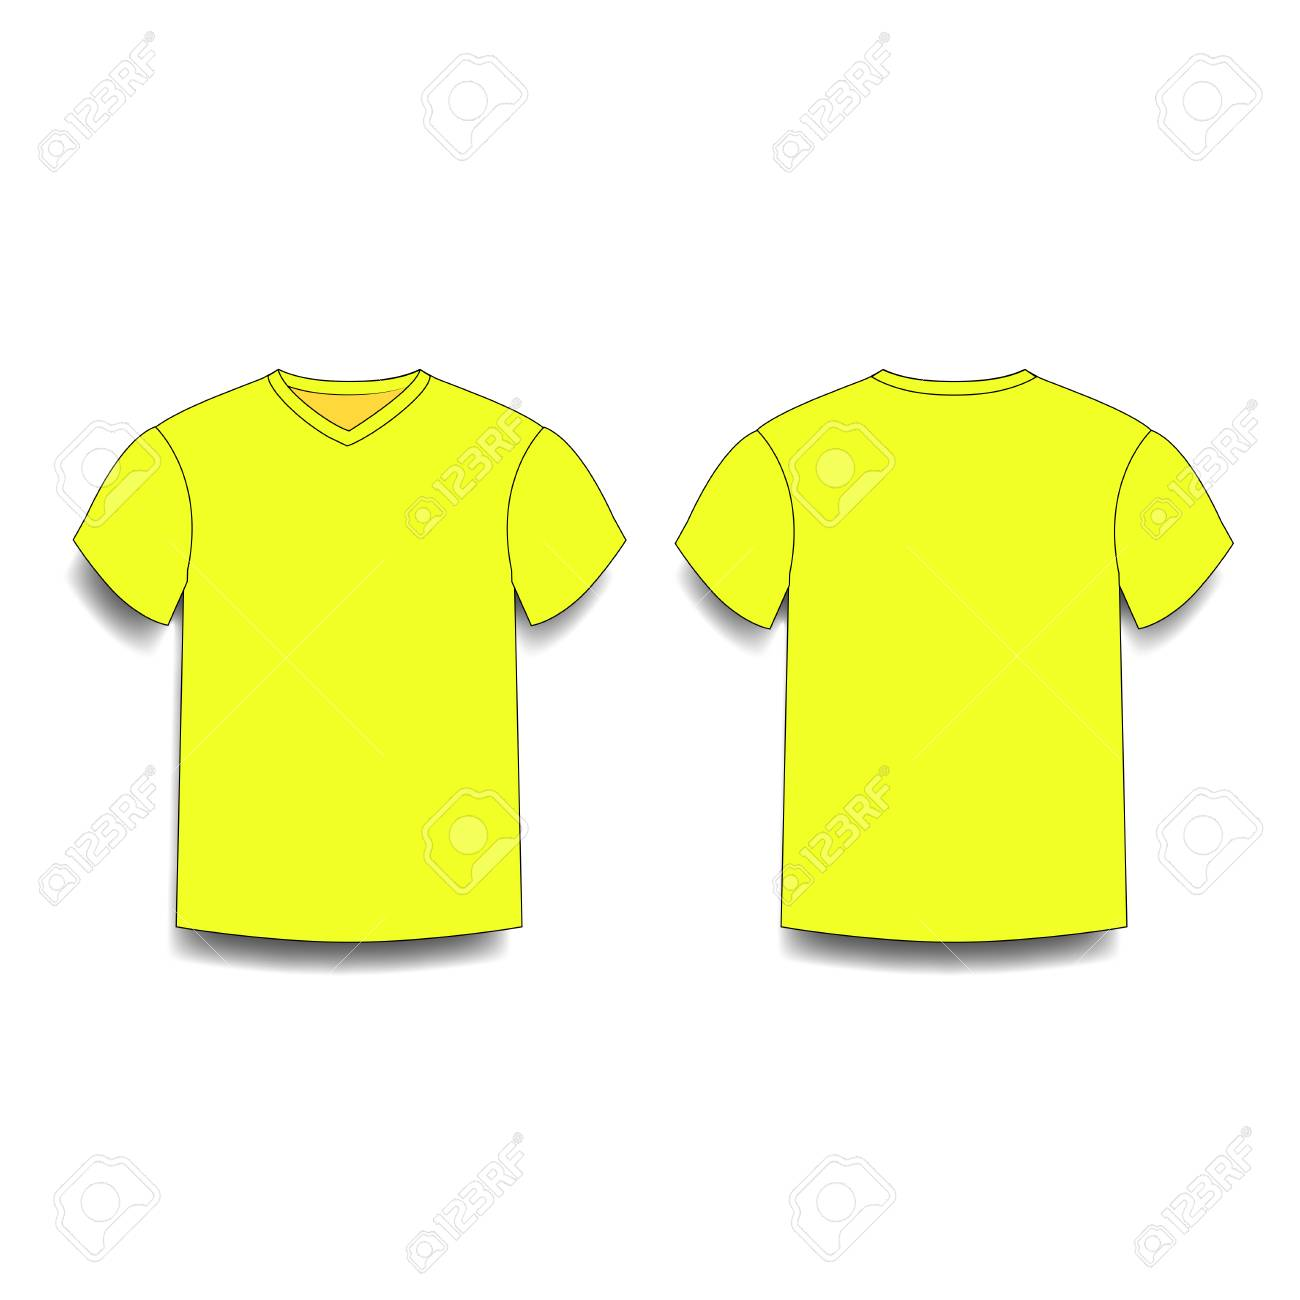 13be065fc15bdc Vector - Yellow men s t-shirt template v-neck front and back side views  vector of male t-shirt wearing illustration isolated on white background.